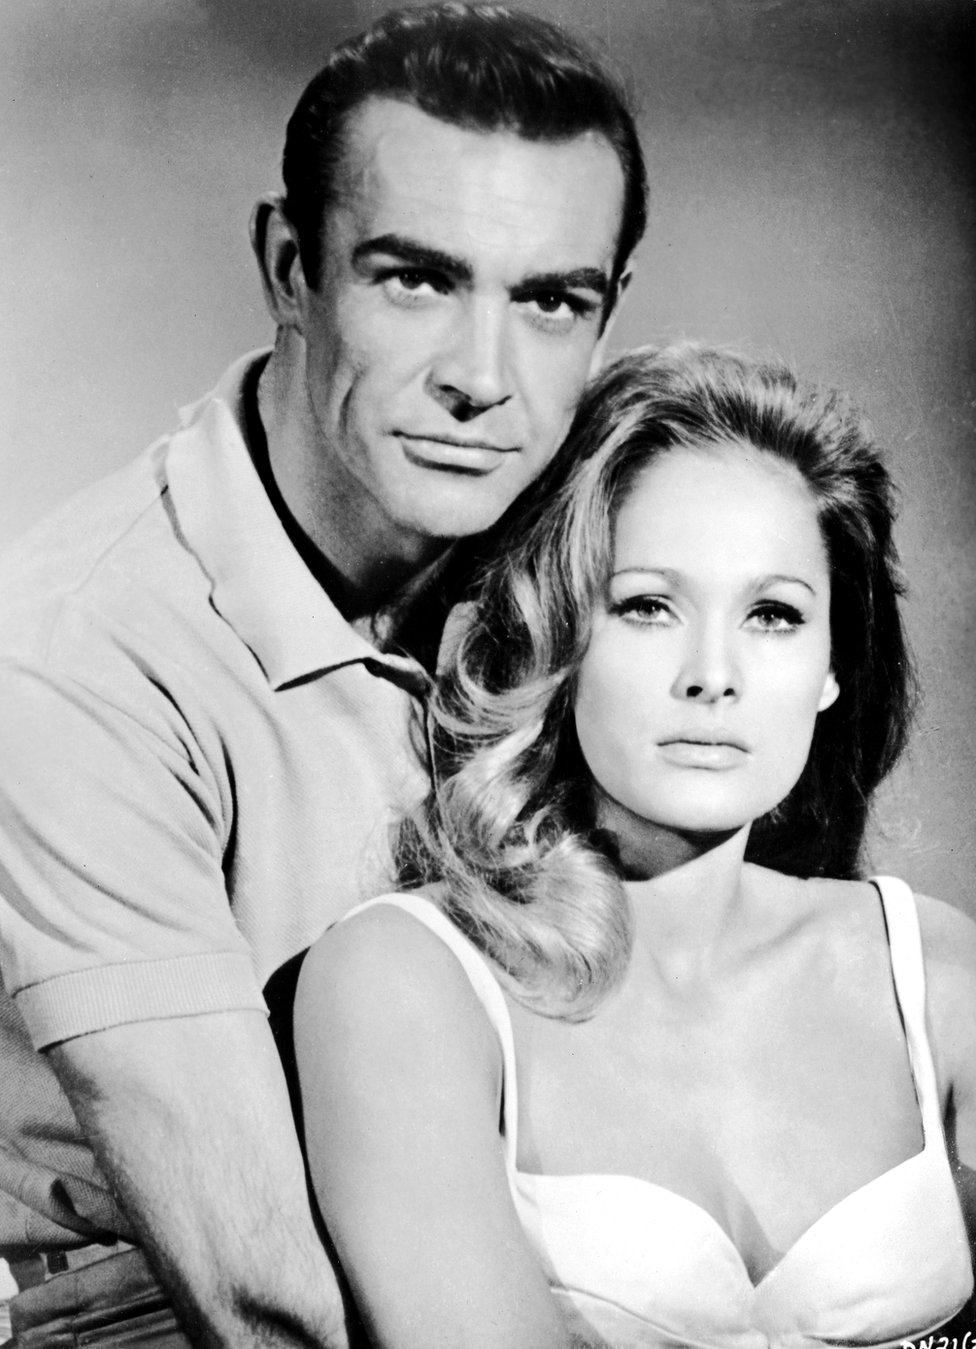 Sean Connery in Dr No with Ursula Andress